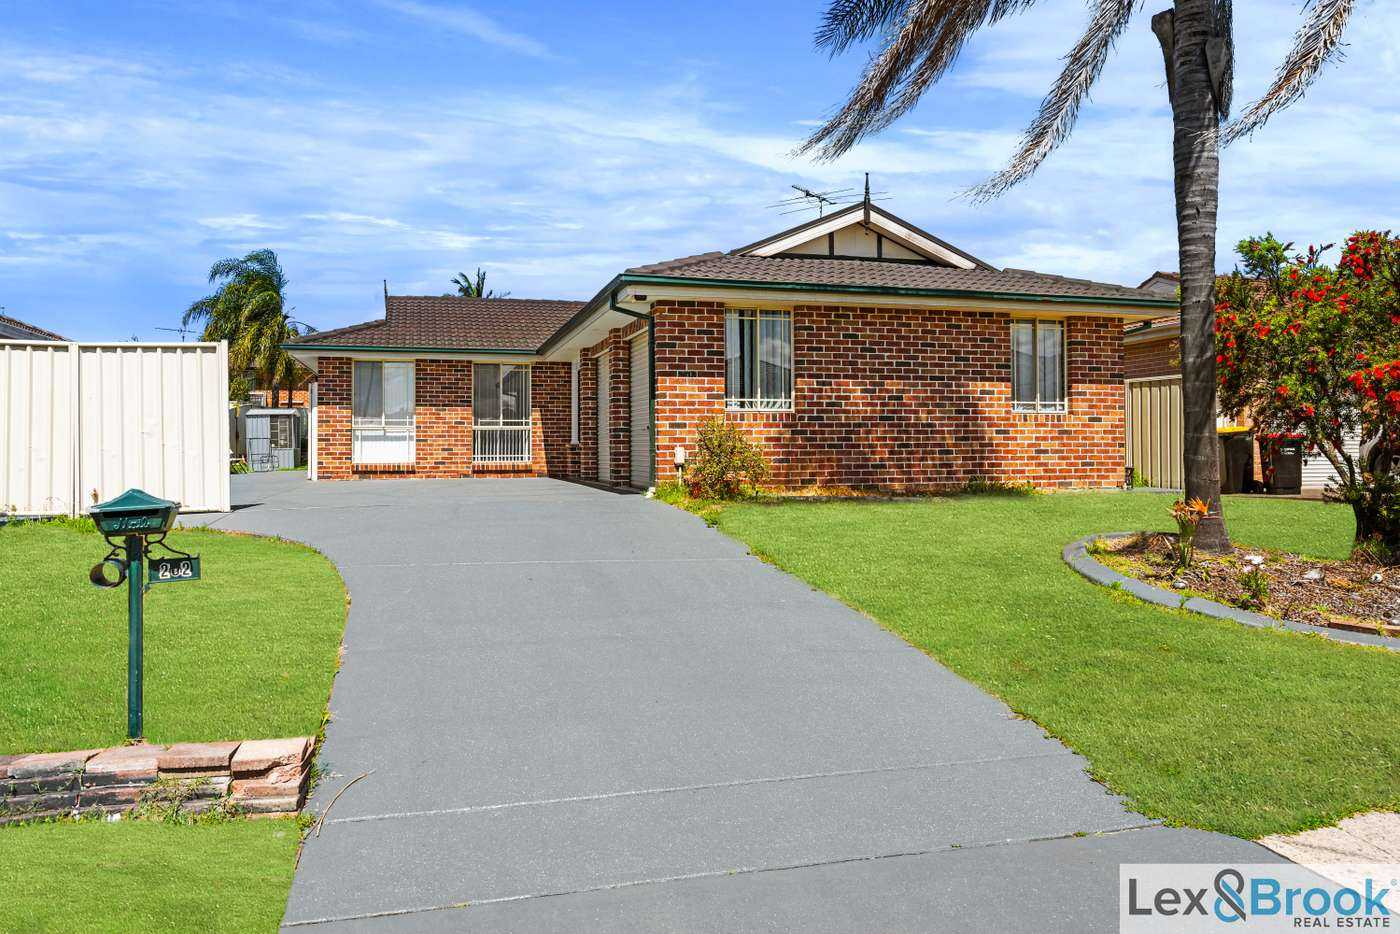 Main view of Homely house listing, 202 Green Valley Rd, Green Valley NSW 2168